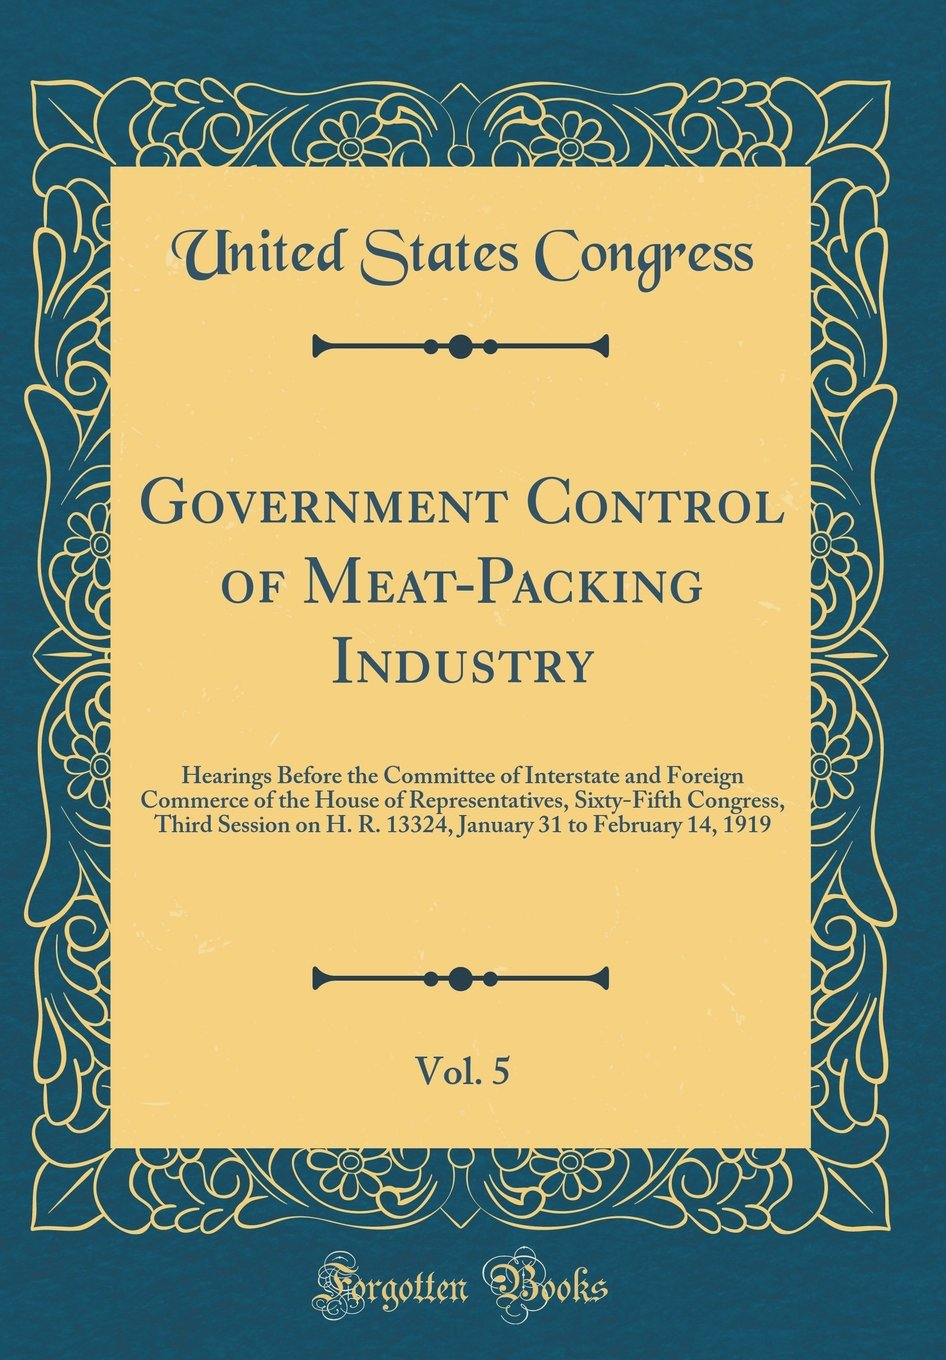 Read Online Government Control of Meat-Packing Industry, Vol. 5: Hearings Before the Committee of Interstate and Foreign Commerce of the House of Representatives, ... 31 to February 14, 1919 (Classic Reprint) pdf